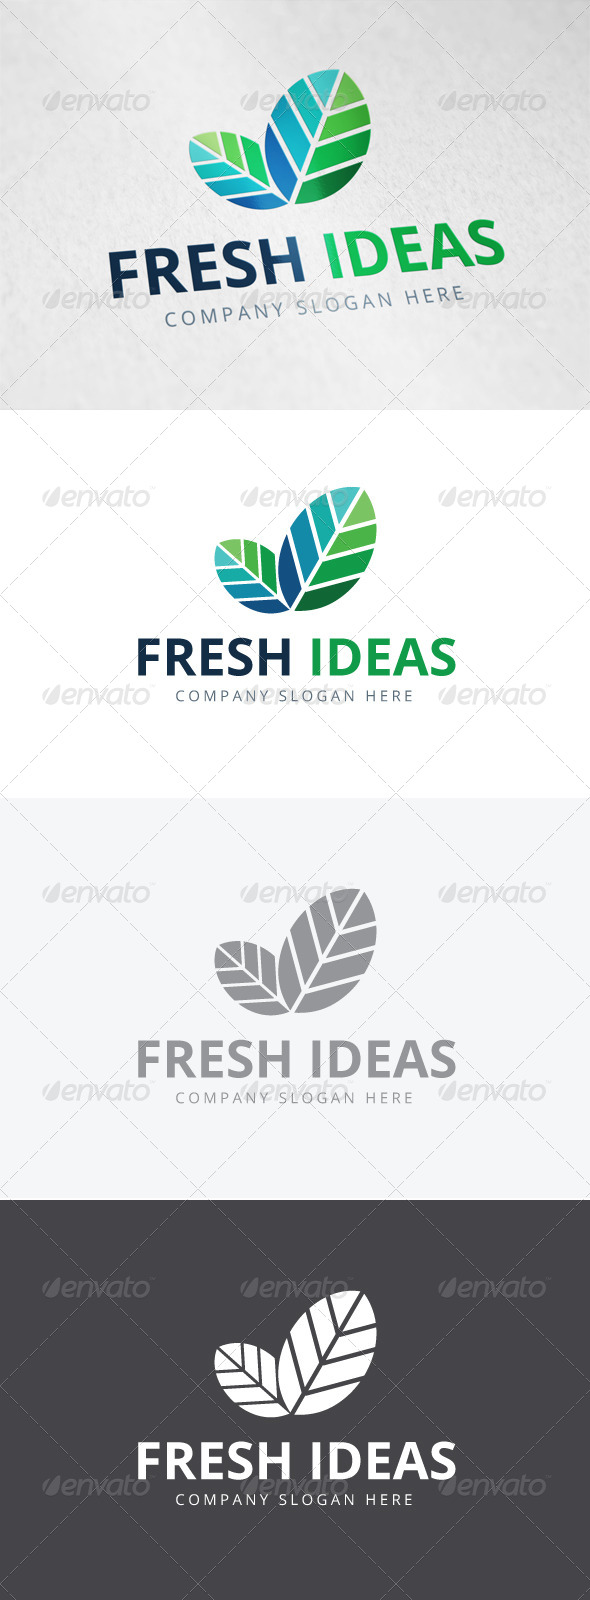 GraphicRiver Fresh Ideas Logo 7888583